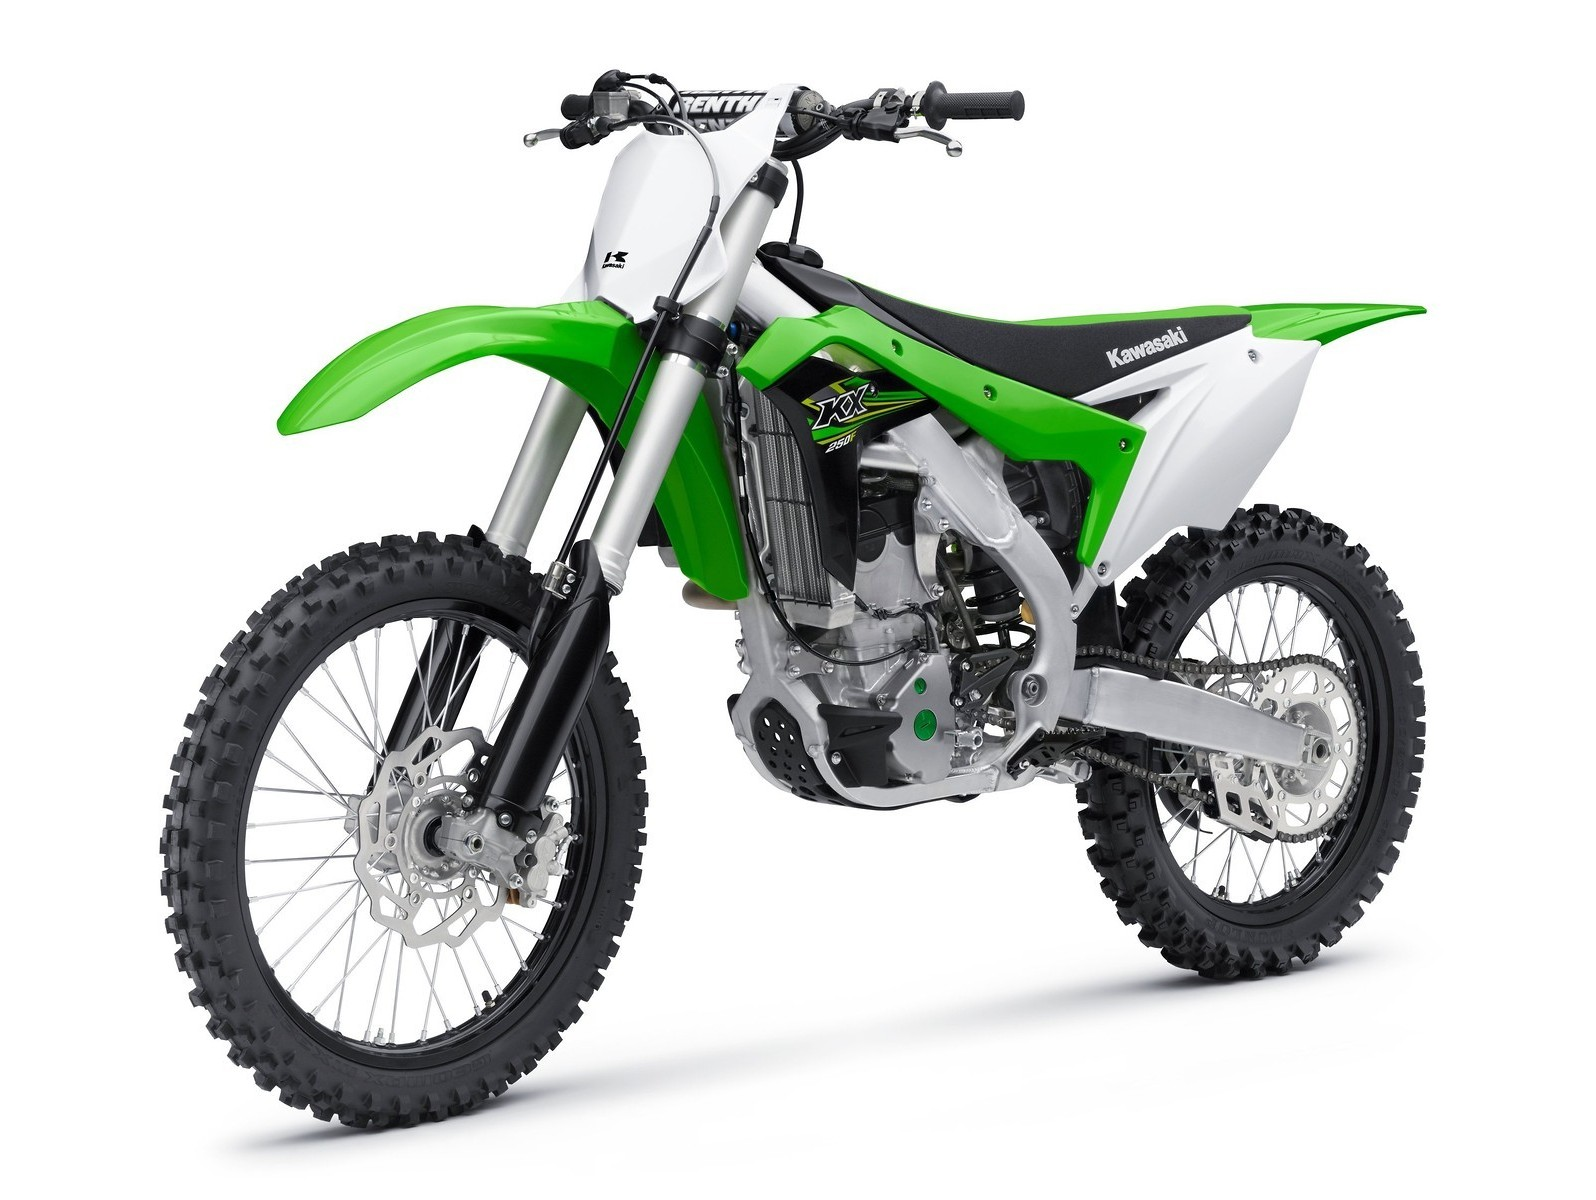 Reviews Com Product Reviews And Comparisons Of 2018 >> 2017 Kawasaki KX250F - Reviews, Comparisons, Specs - Motocross / Dirt Bike Bikes - Vital MX